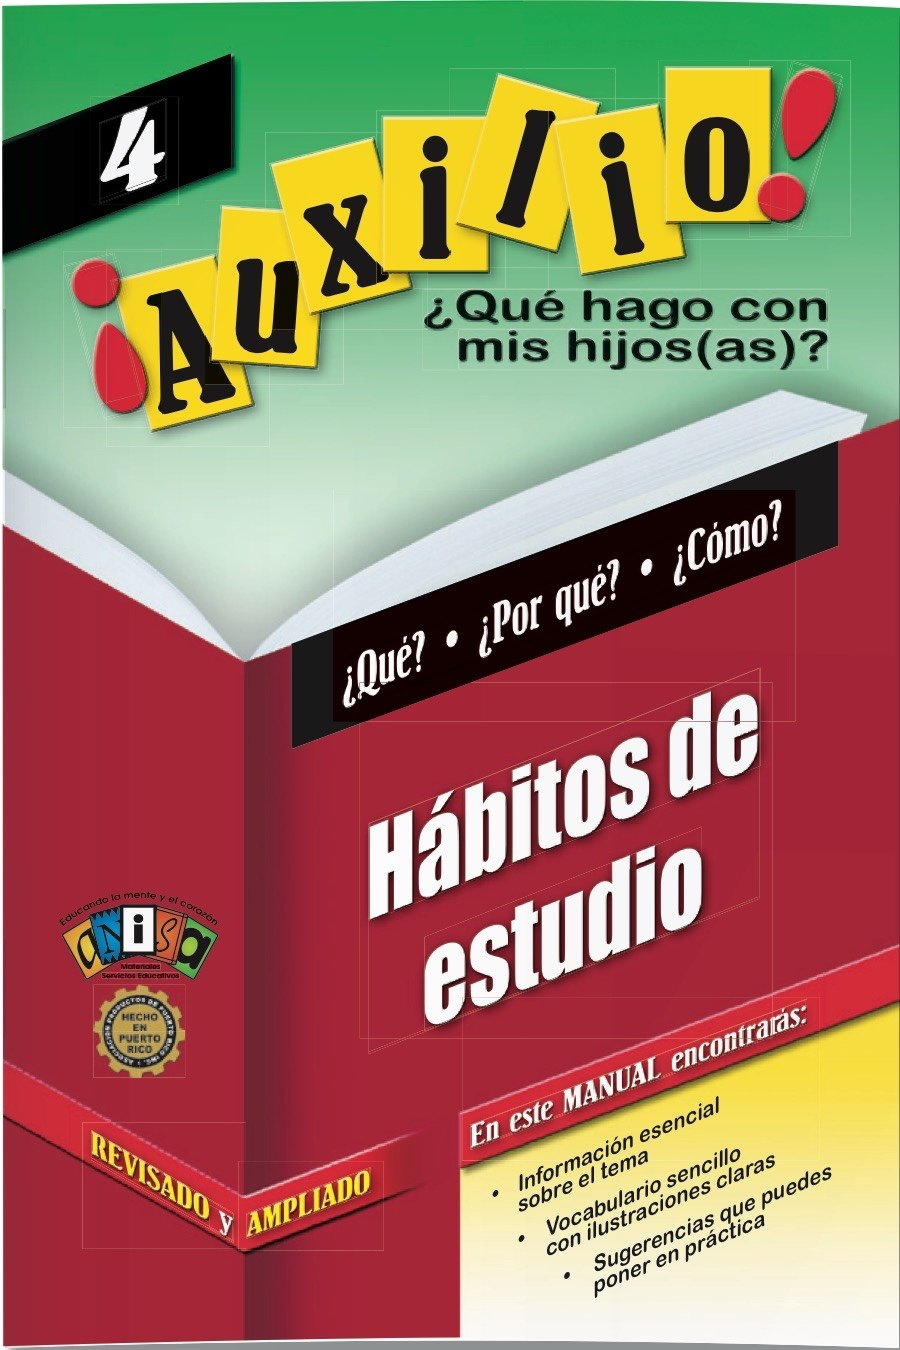 AMP-004 Manual 4: Hábitos de estudio